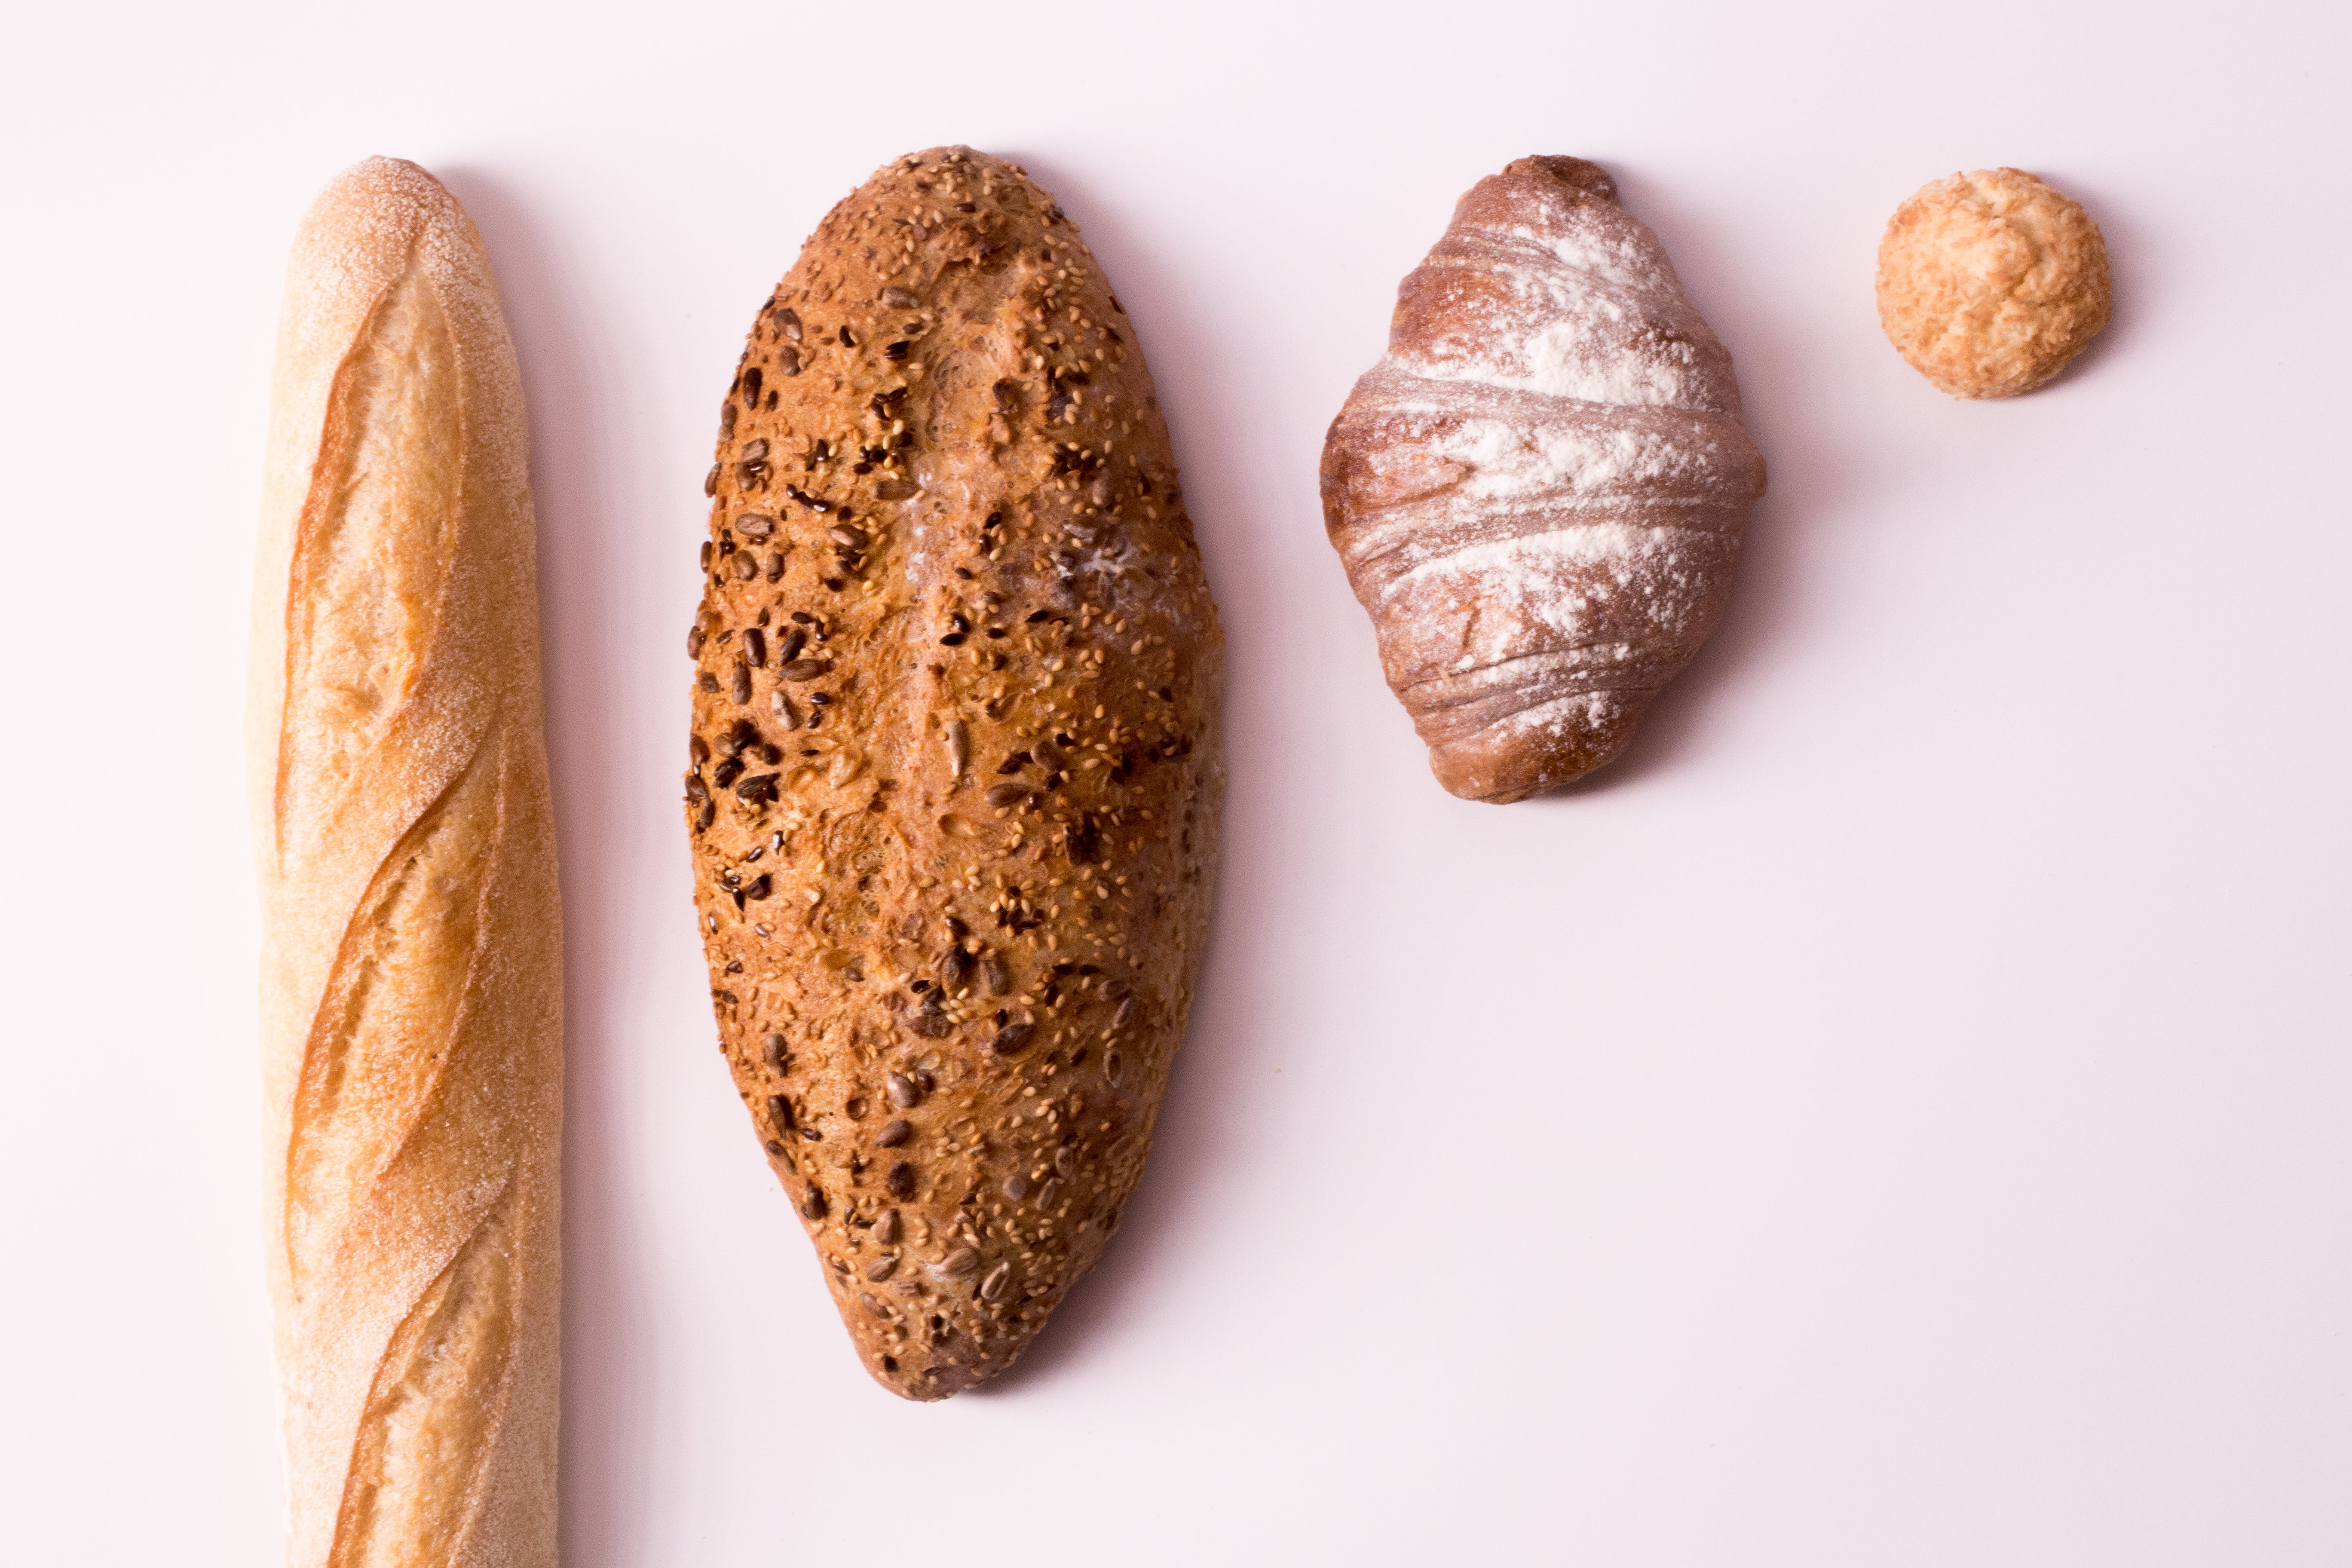 Flatlay Photography Of Variety Of Breads